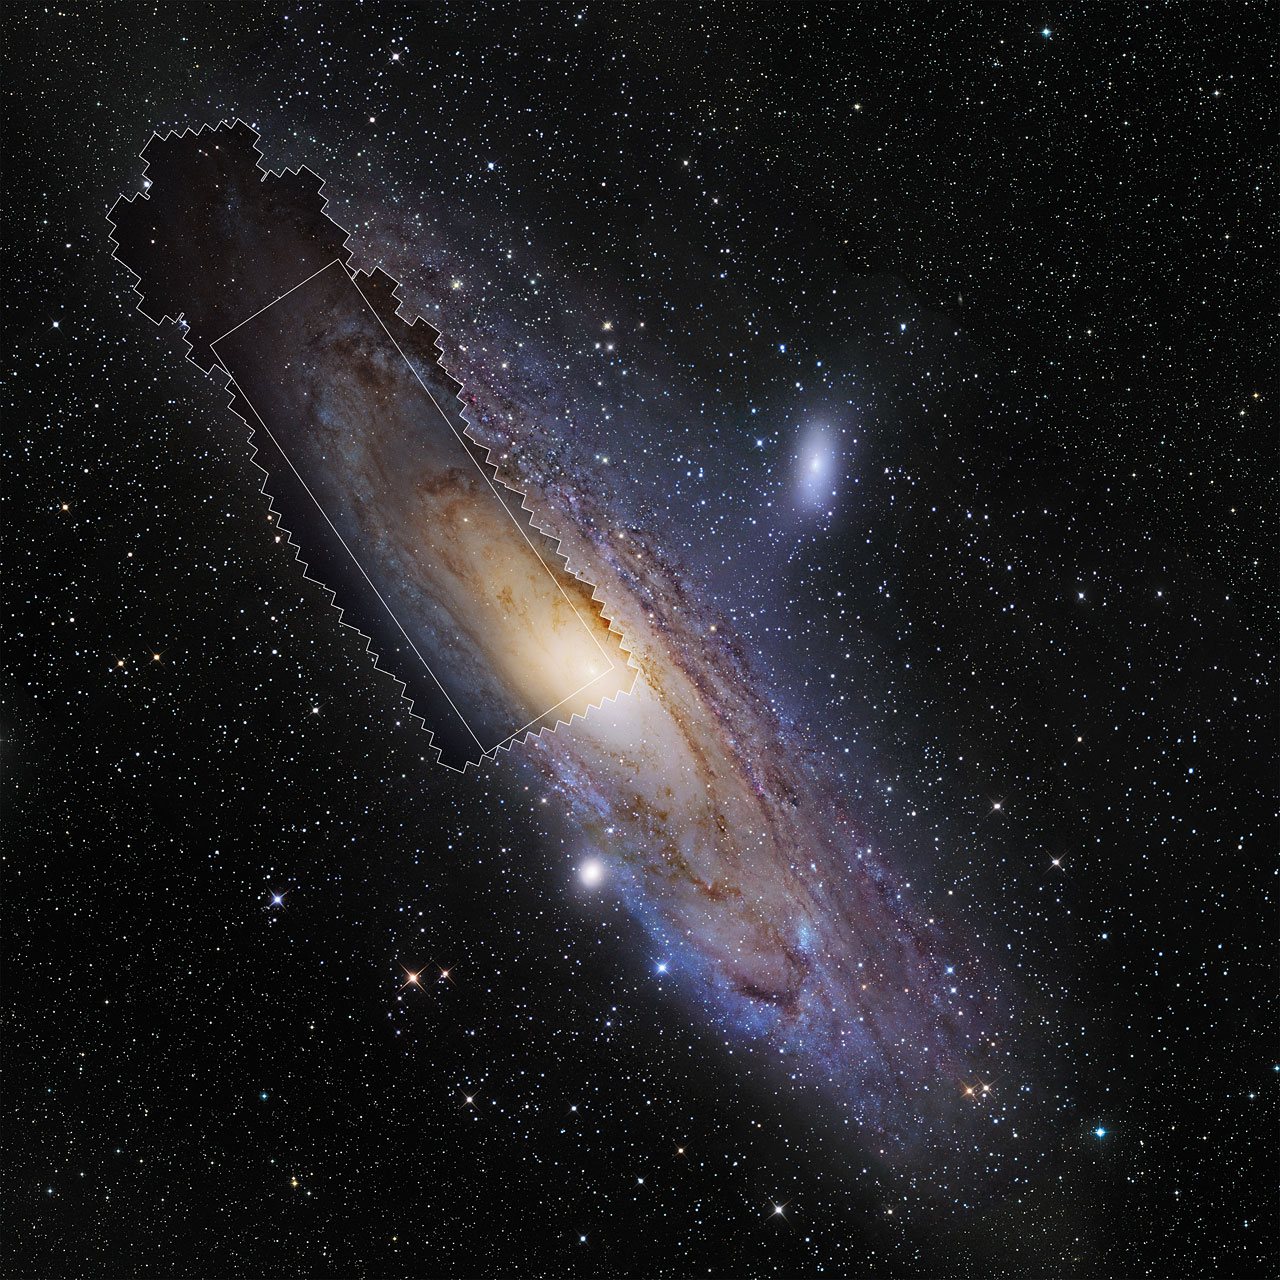 Andromeda in hd esa hubble for Immagini galassie hd